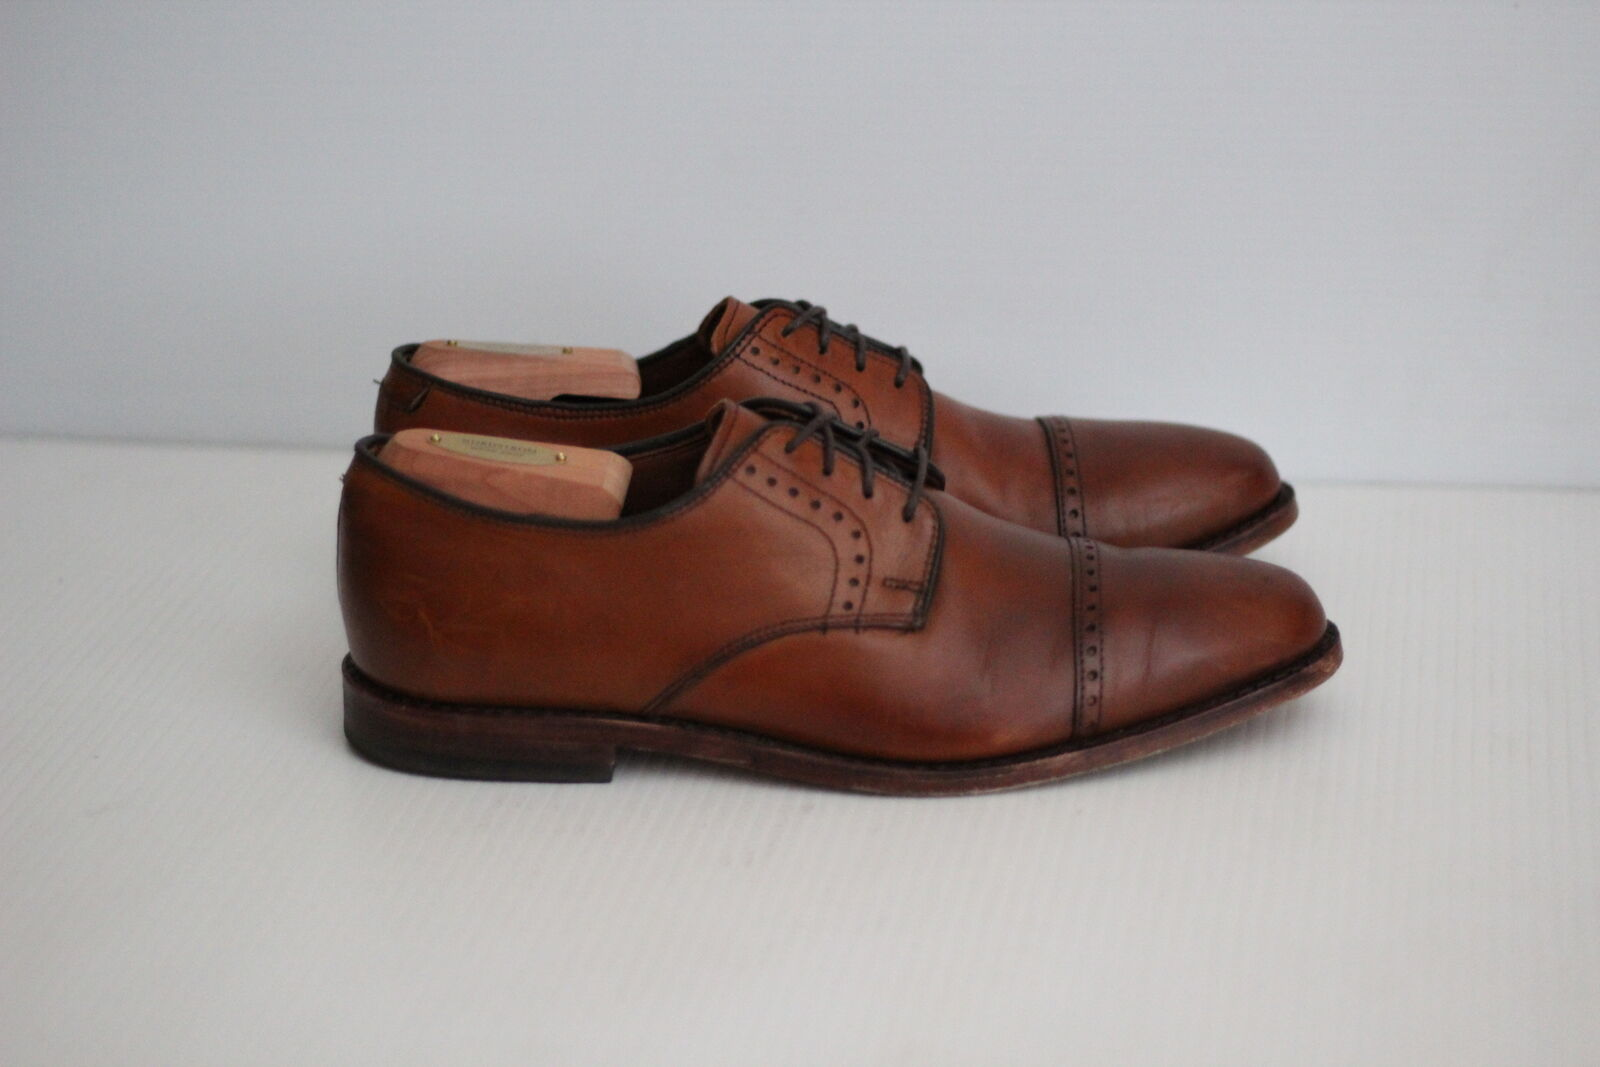 Allen Edmonds 'Clifton' bluecher Cap Toe Oxford - Walnut Brown - 9 D  (C72)